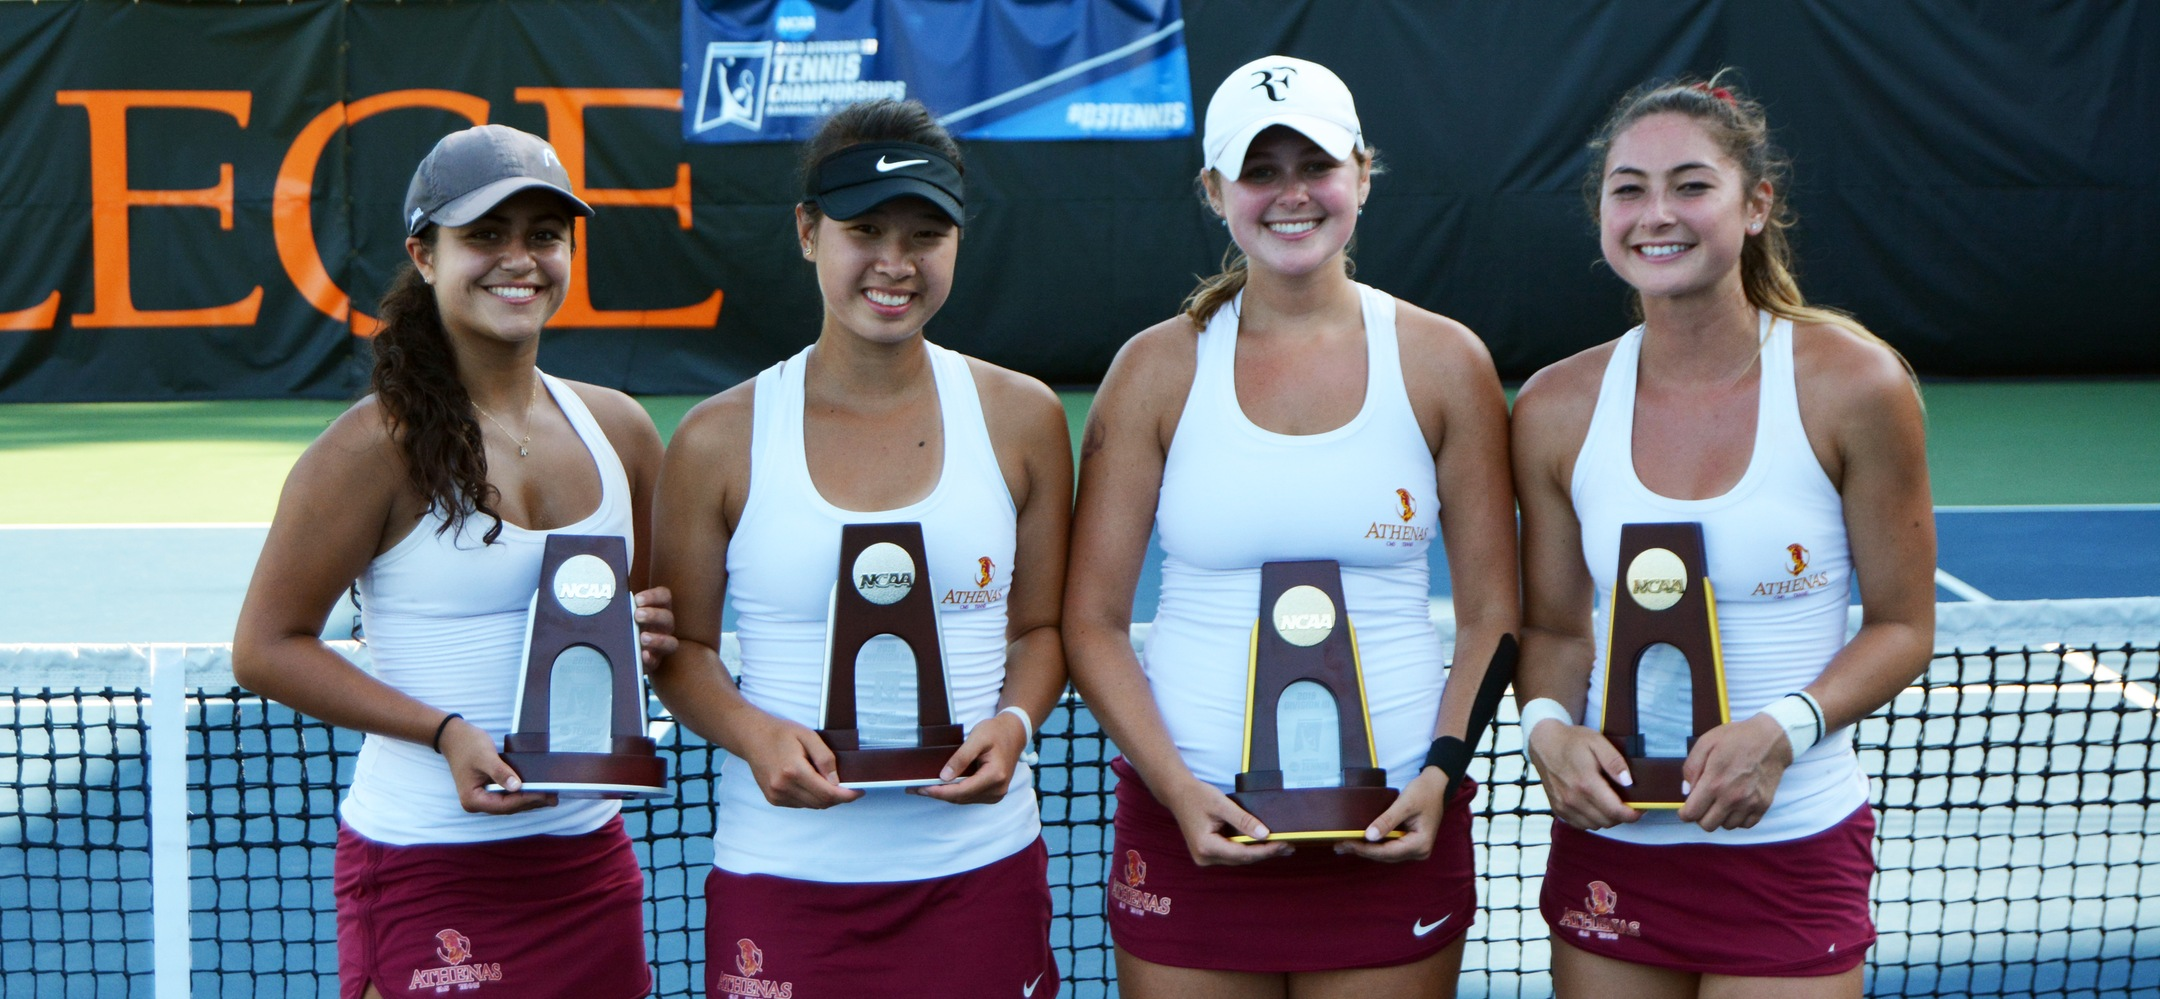 From L to R: Sarah Bahsoun, Nicole Tan, Caroline Cox and Catherine Allen after facing each other in the NCAA Doubles Finals